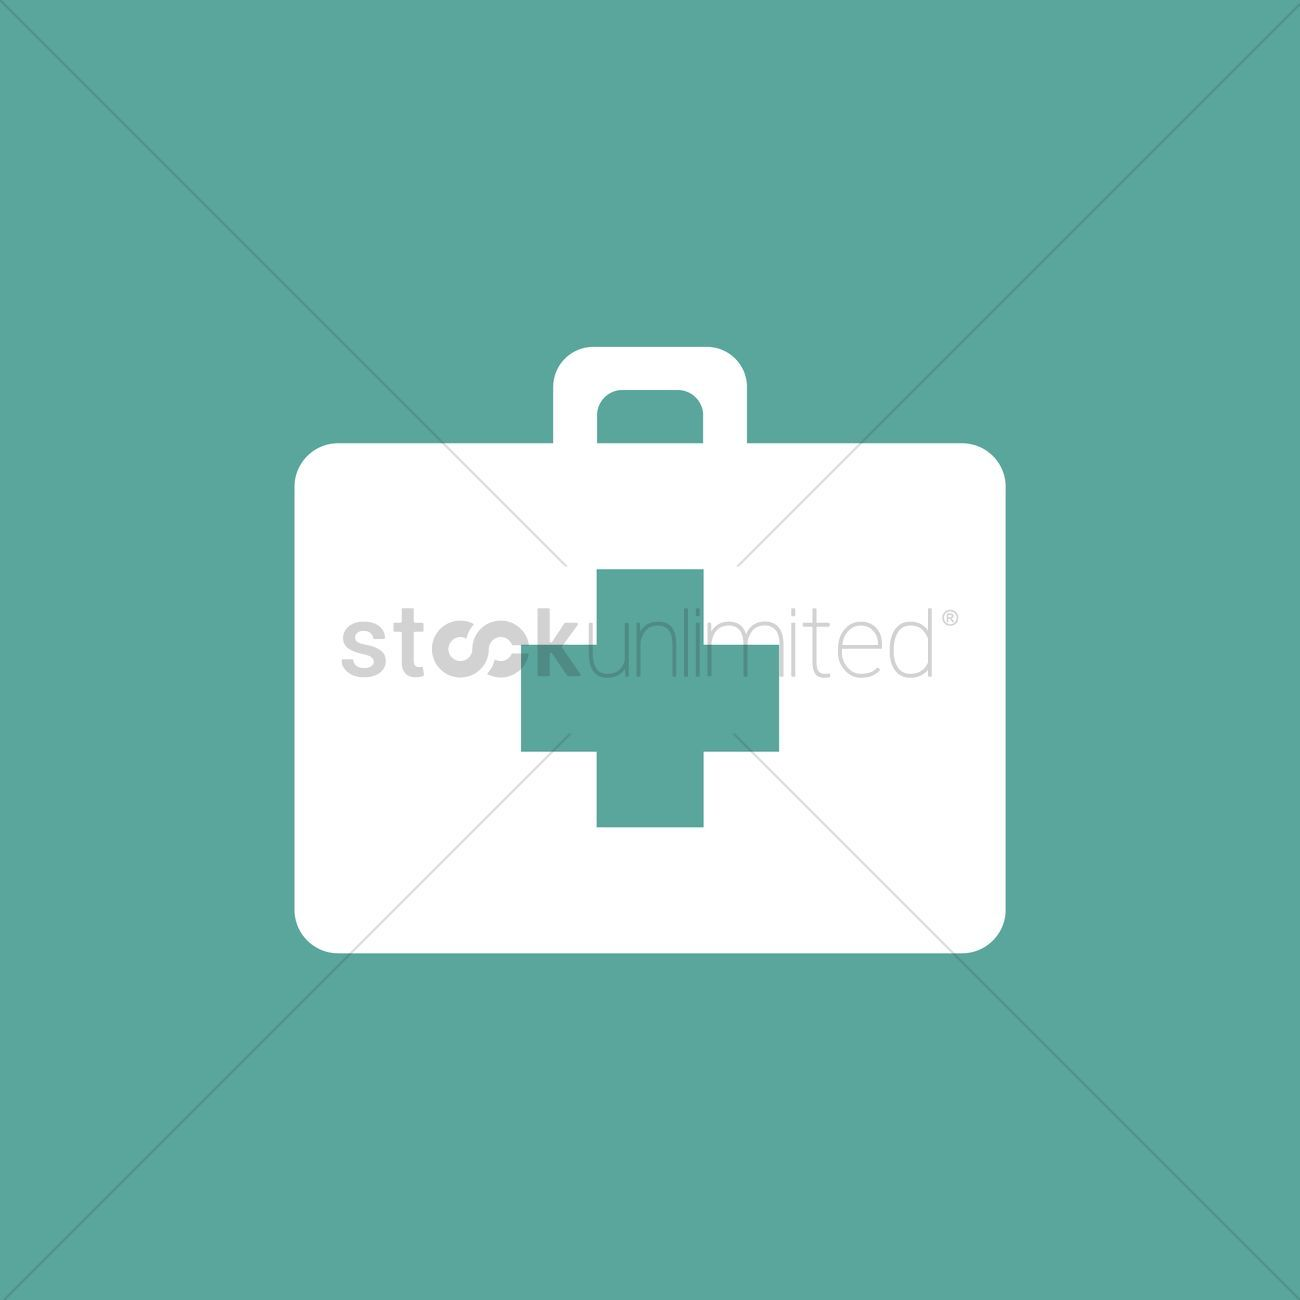 First Aid Kit Vector Illustration Affiliate Kit Aid Illustration Vector Affiliate In 2020 Mockup Design Vector Illustration Illustration